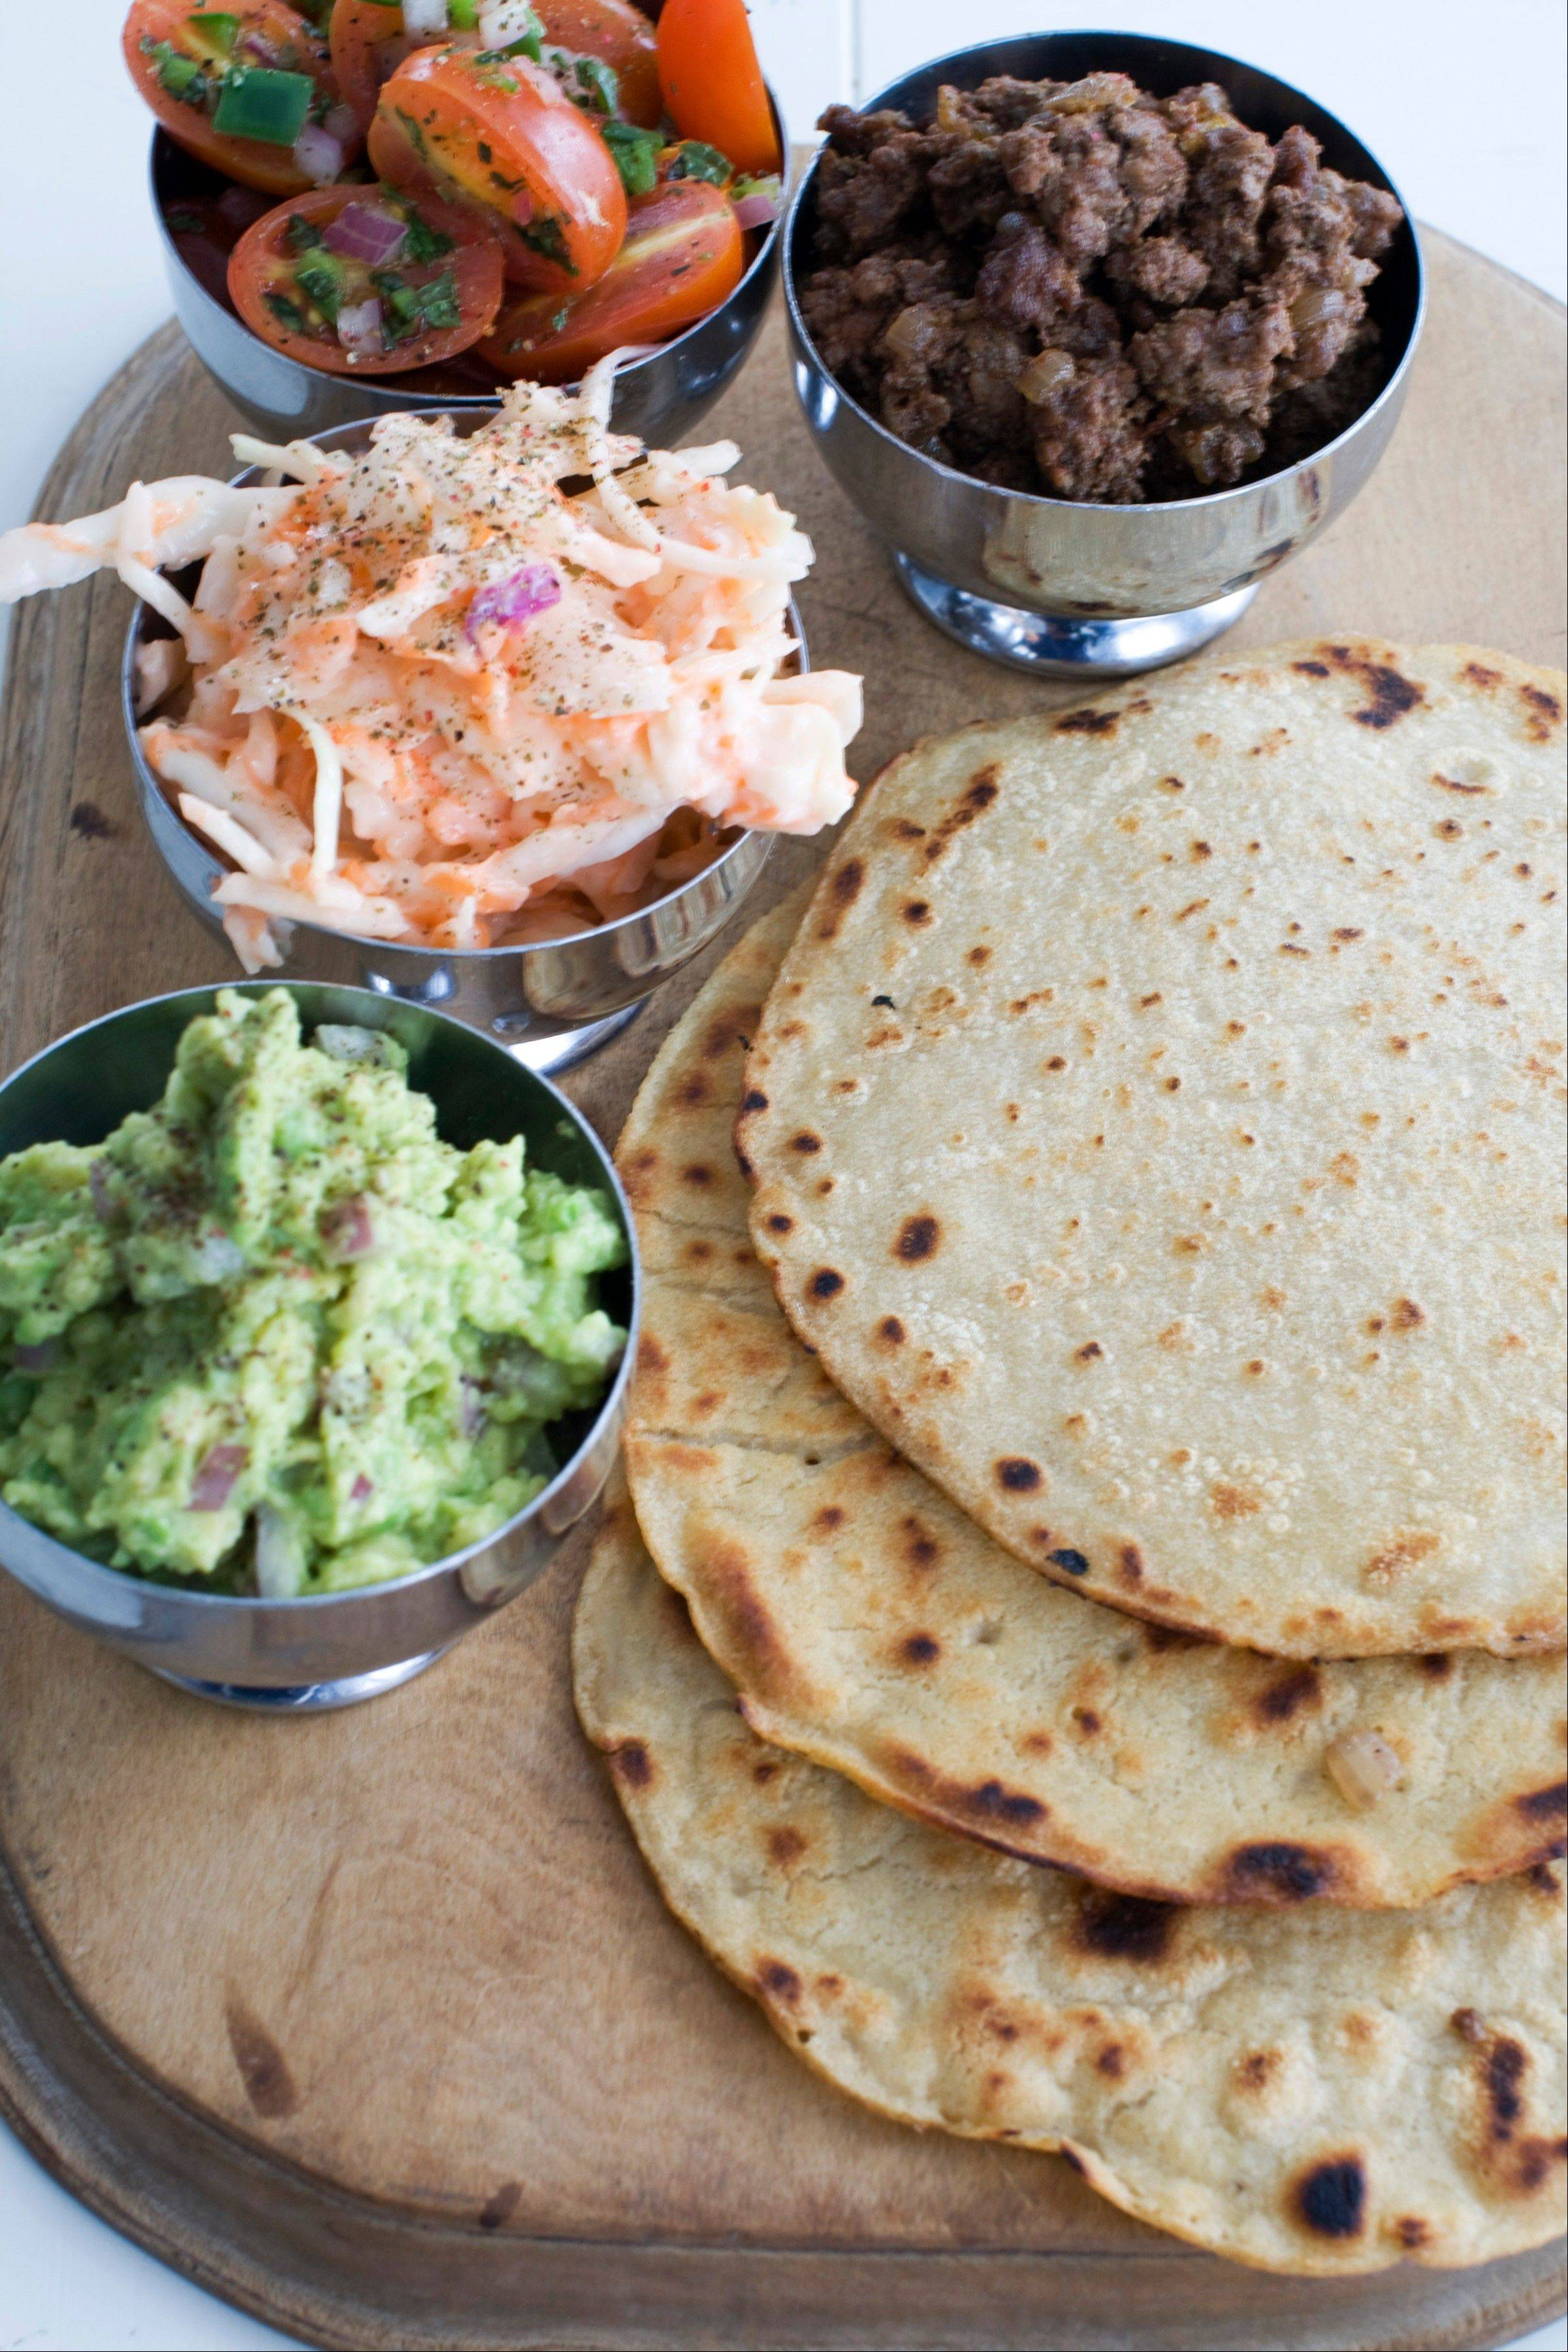 Tortillas made from matzo cake meal serve as the base for a trio of vibrant fillings and toppings.